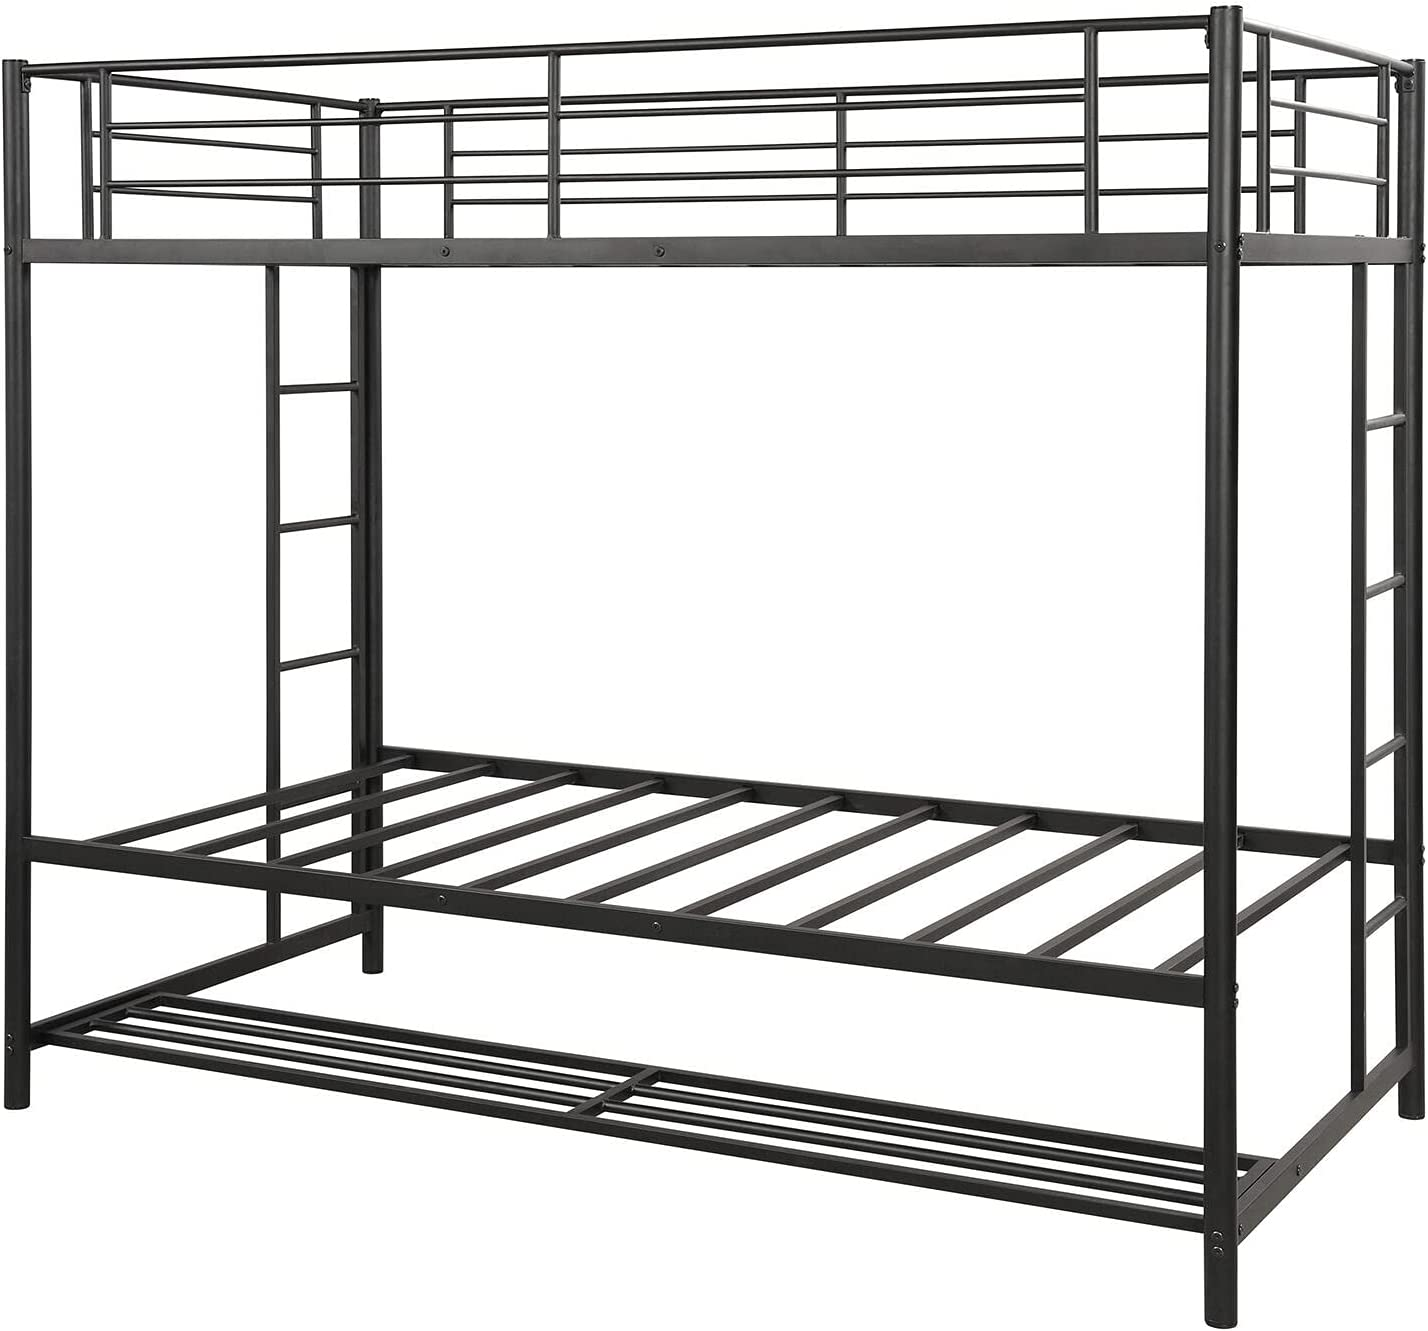 GXK Twin Over Long Beach Mall Bunk Bed with Storage Heavy Duty Fr Discount mail order Metal